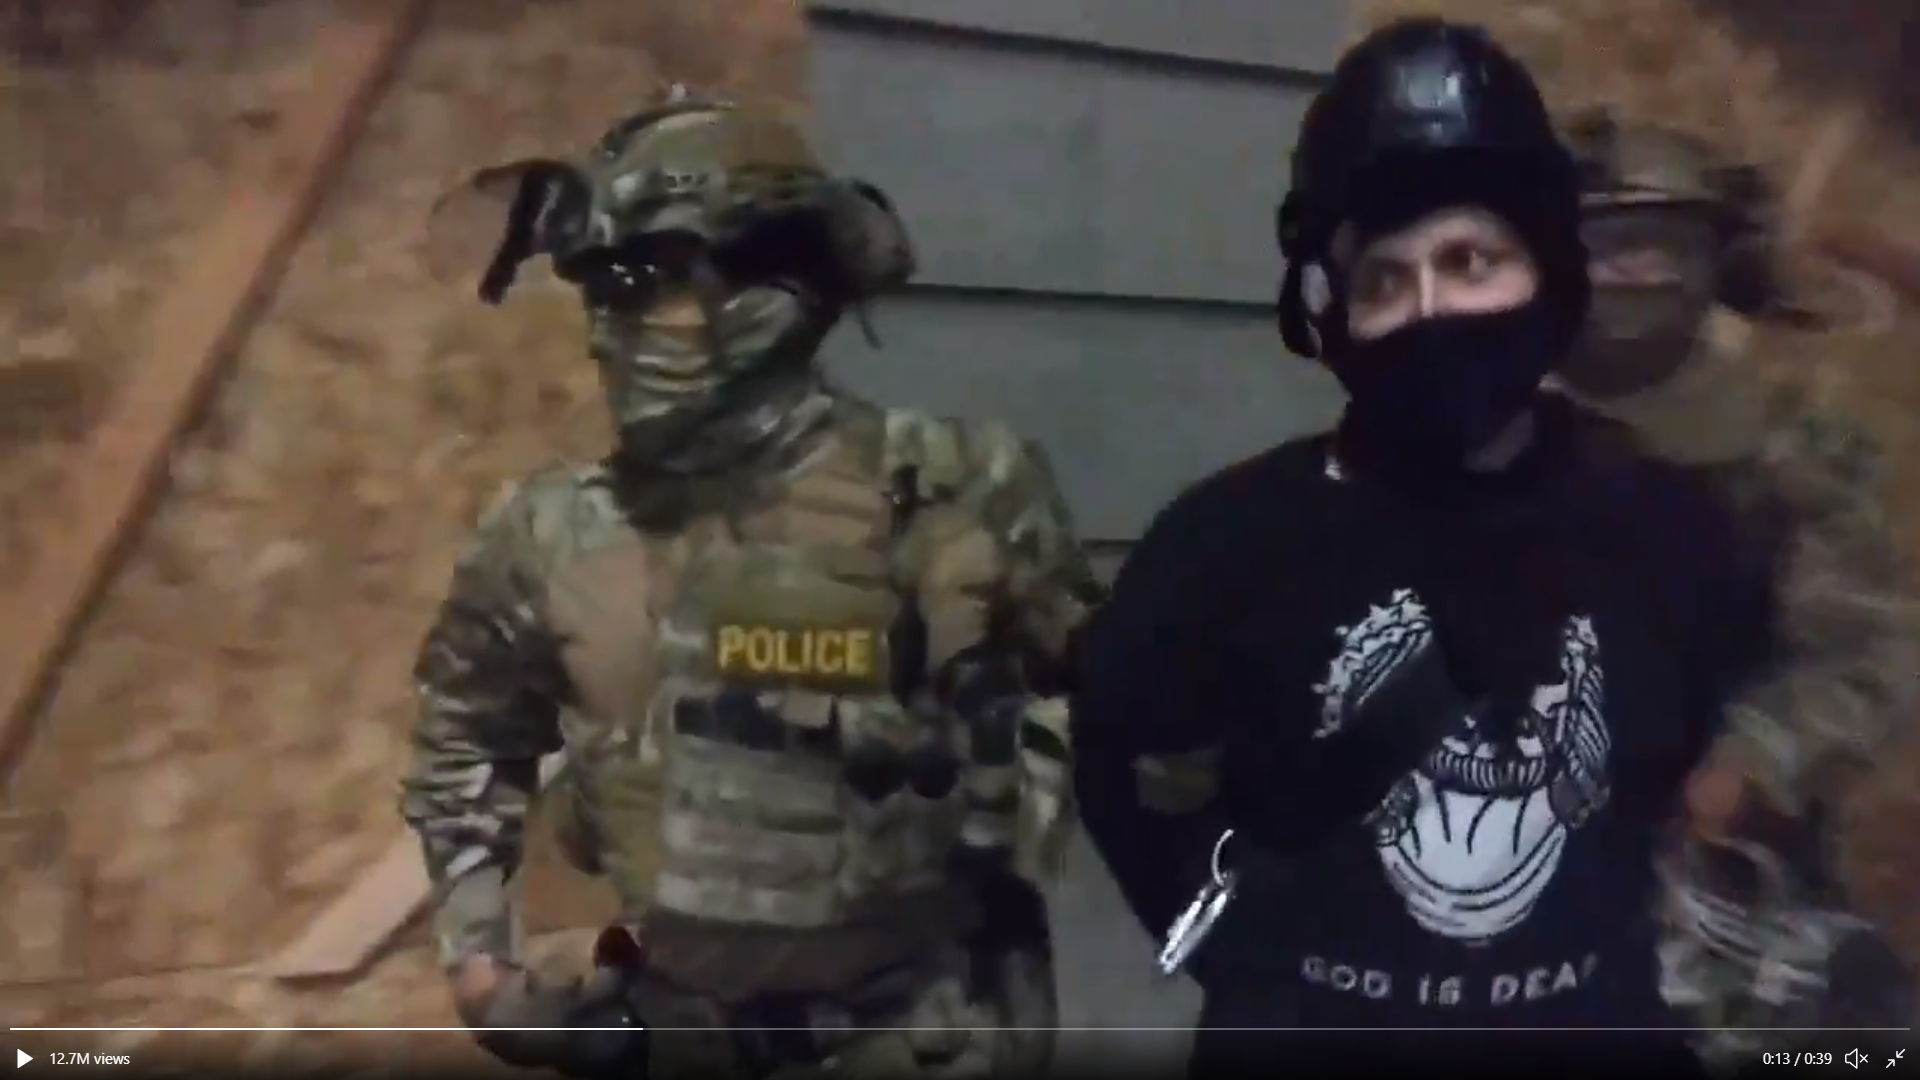 Secret police seizing a protester in Portland (image: The Sparrow Project)